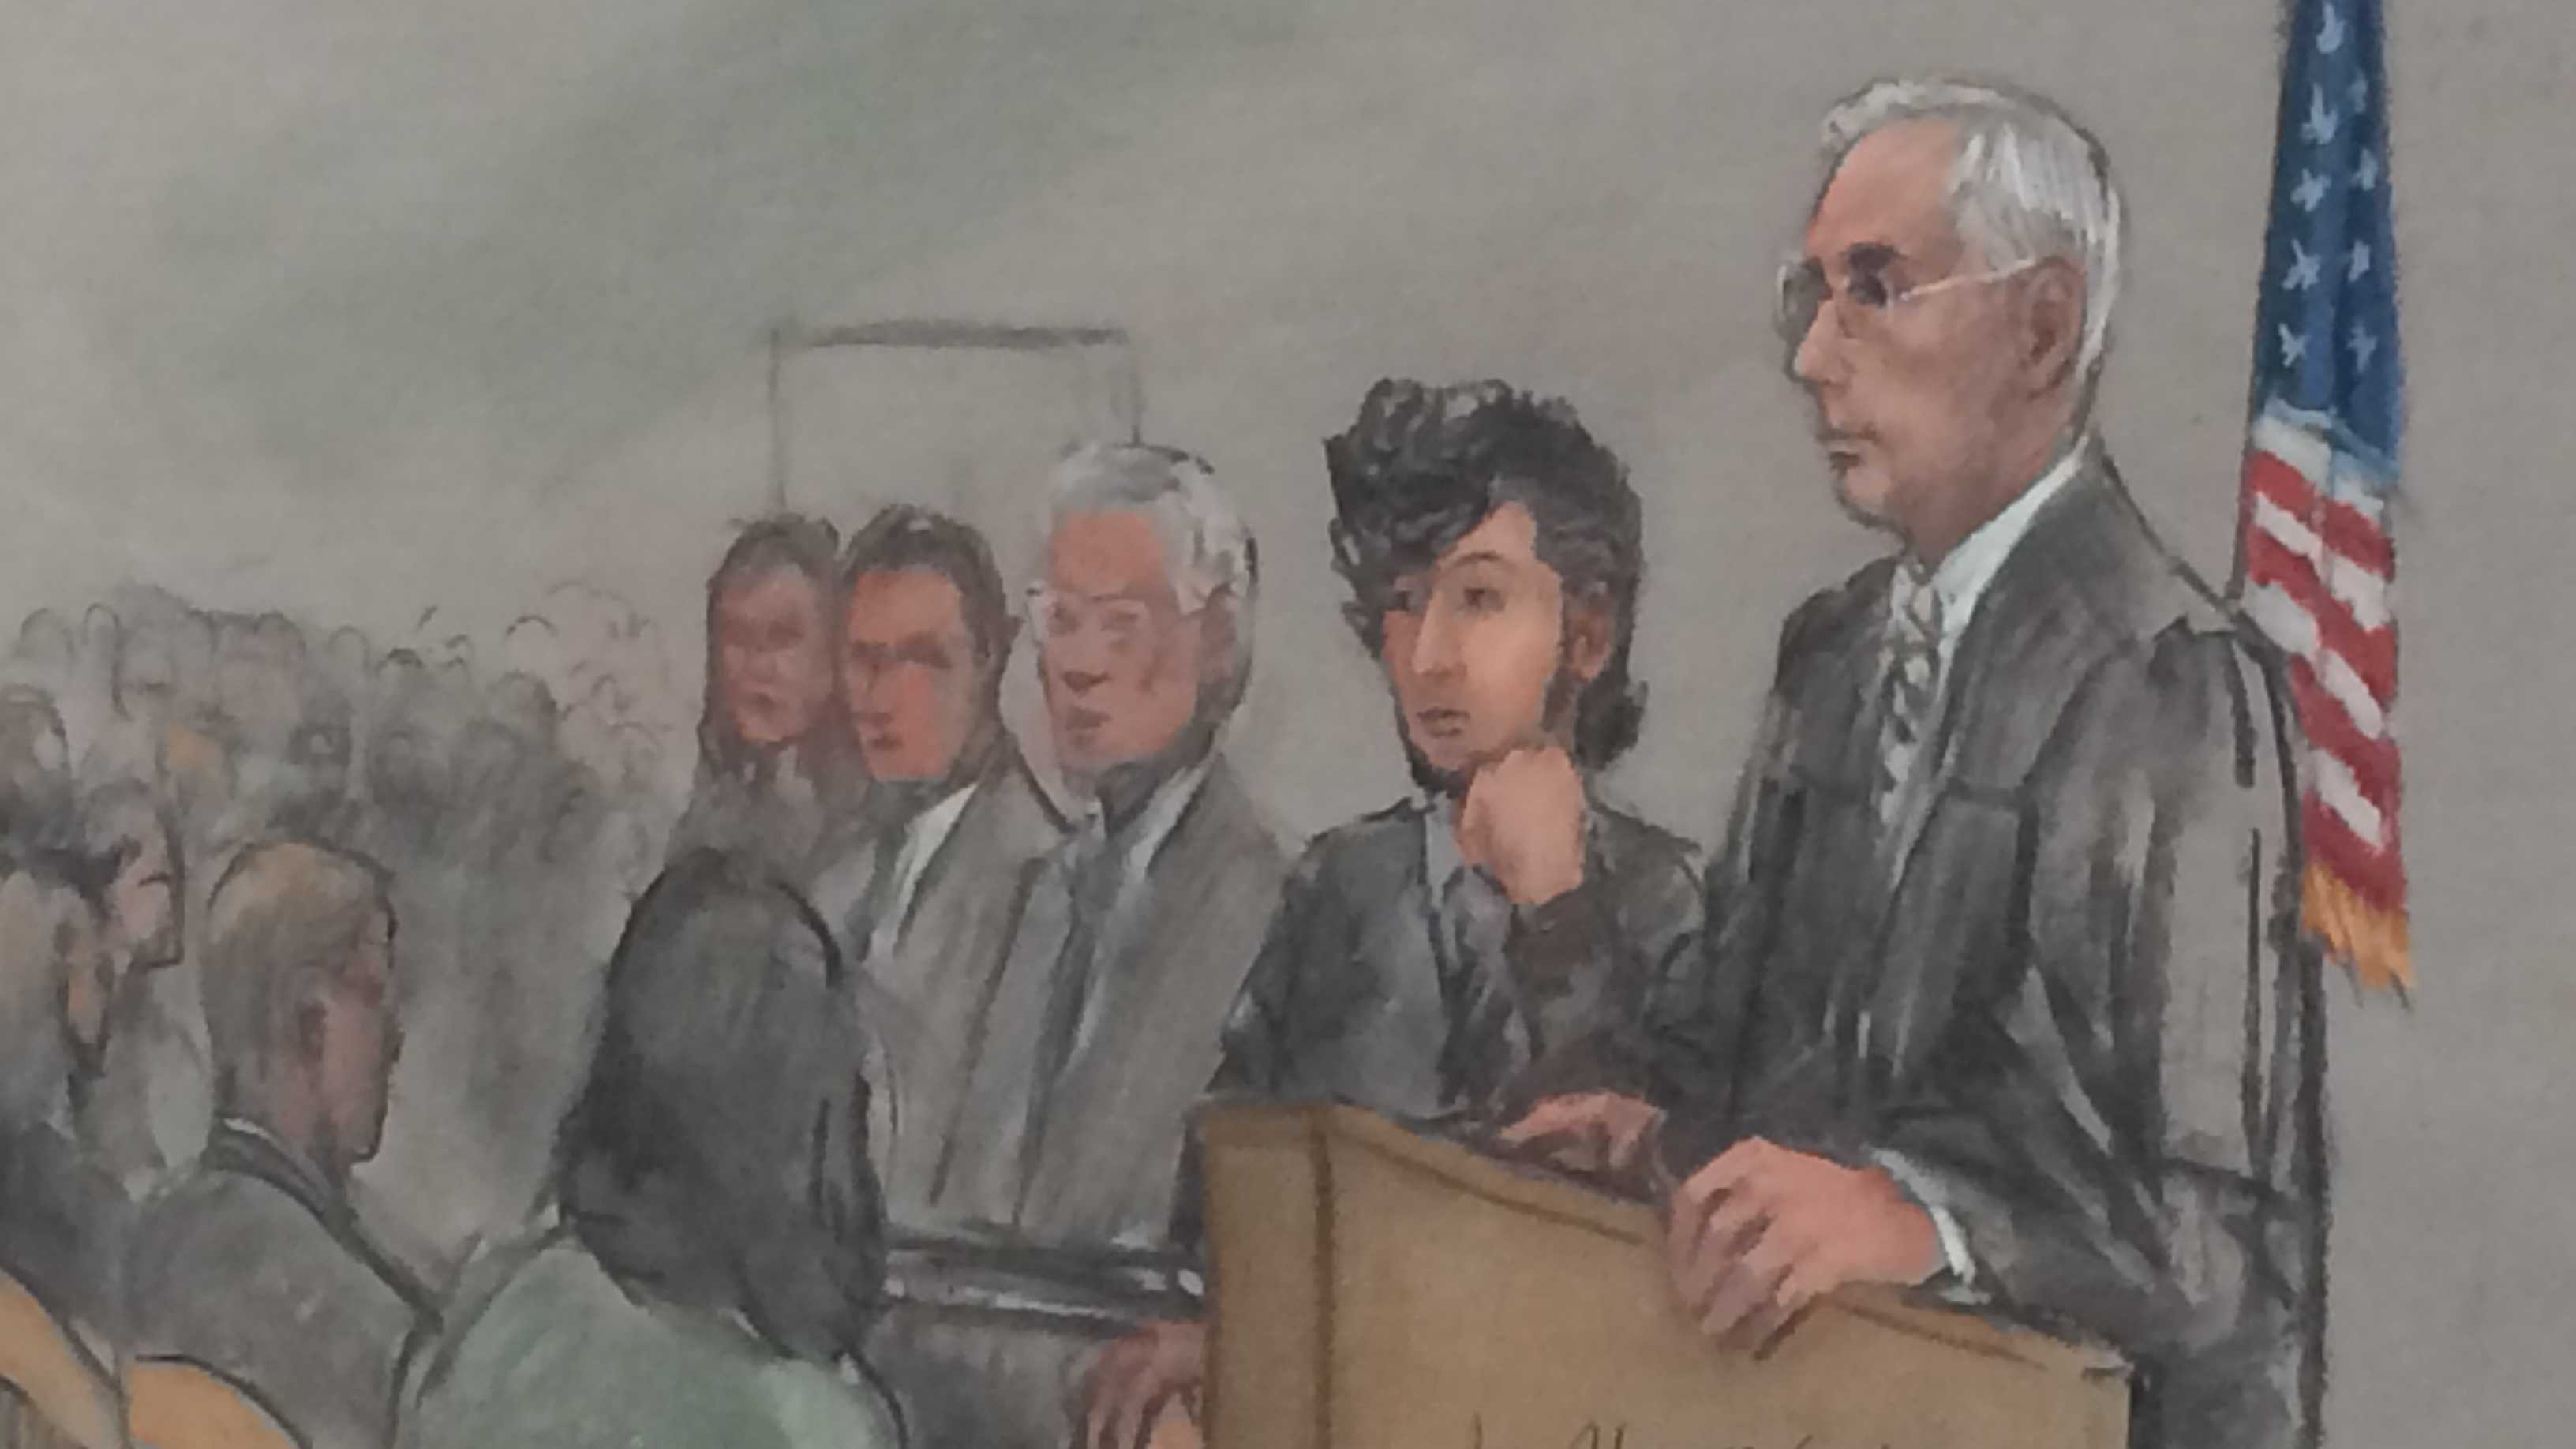 Day 1: Jan 5, 2015: Potential jurors appear in court as jury selection begins under tight security for Boston Marathon Bombing suspect Dzhokhar Tsarnaev. He is accused of planning and carrying out the twin bombings that killed three people and wounded more than 260 others near the finish line of the race on April 15, 2013.